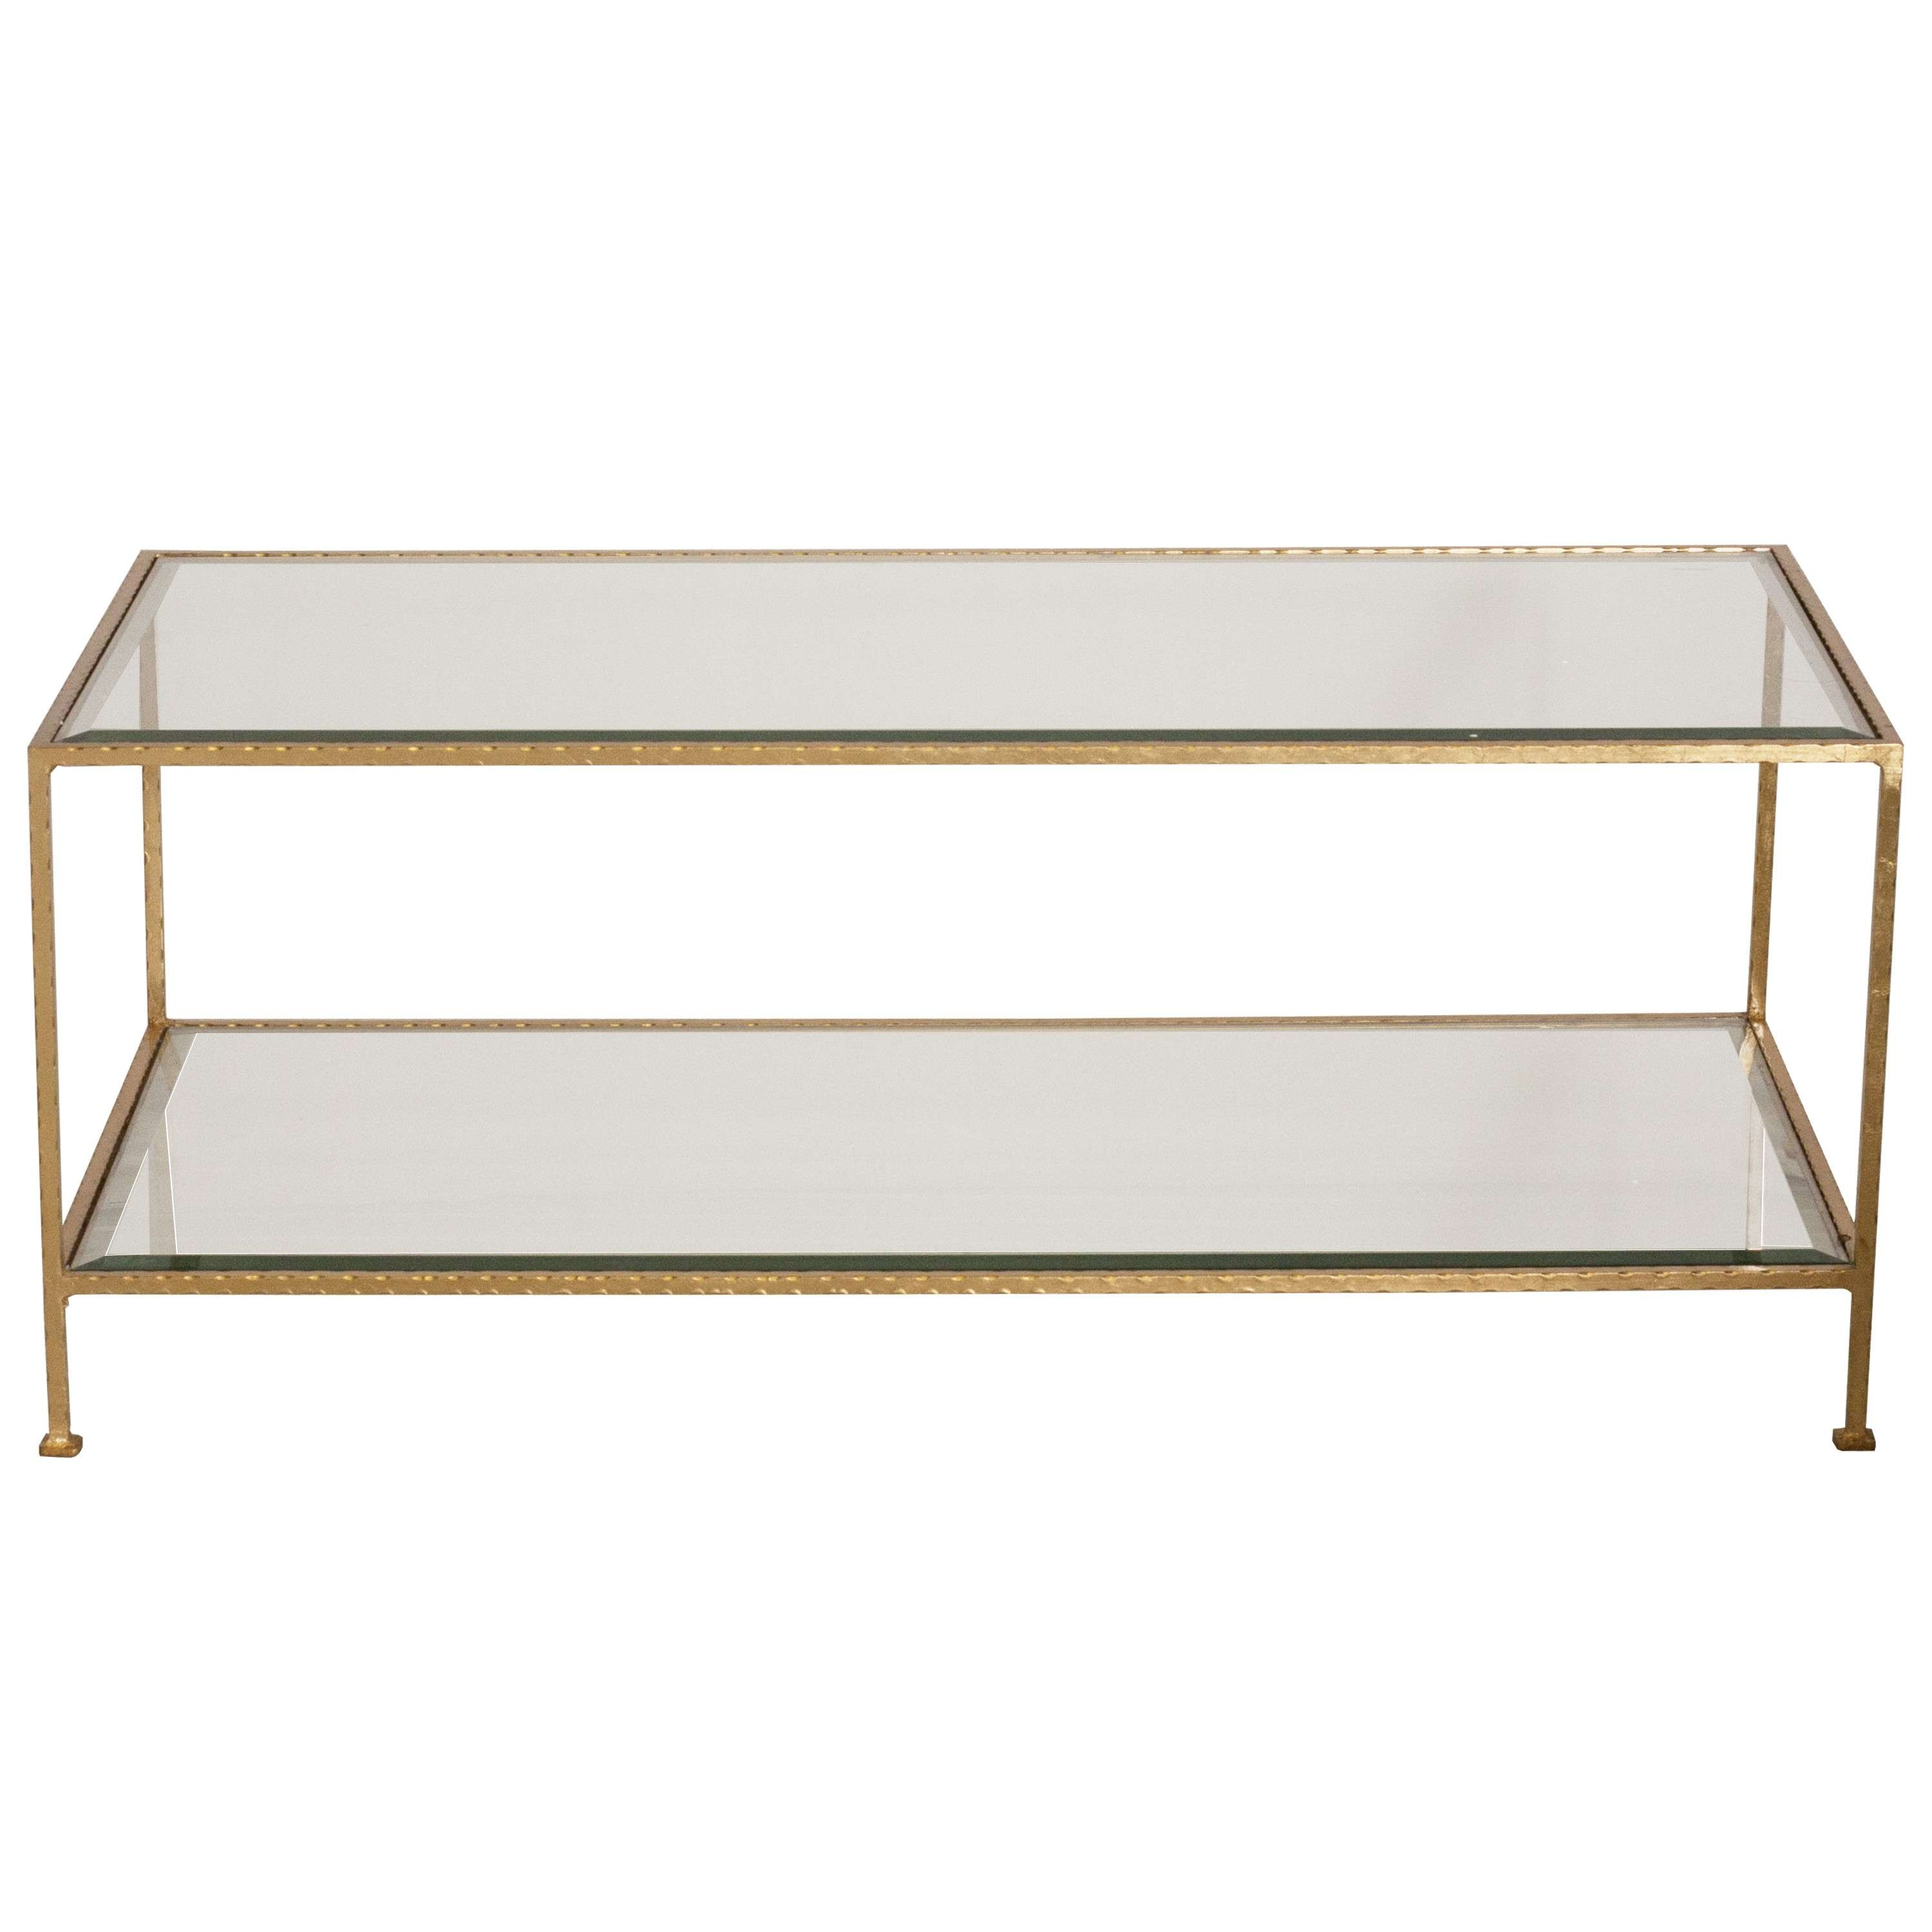 Coffee Tables : Elegant Clear And Golden Rectangle Traditional With Regard To Preferred Glass And Metal Coffee Tables (View 9 of 20)